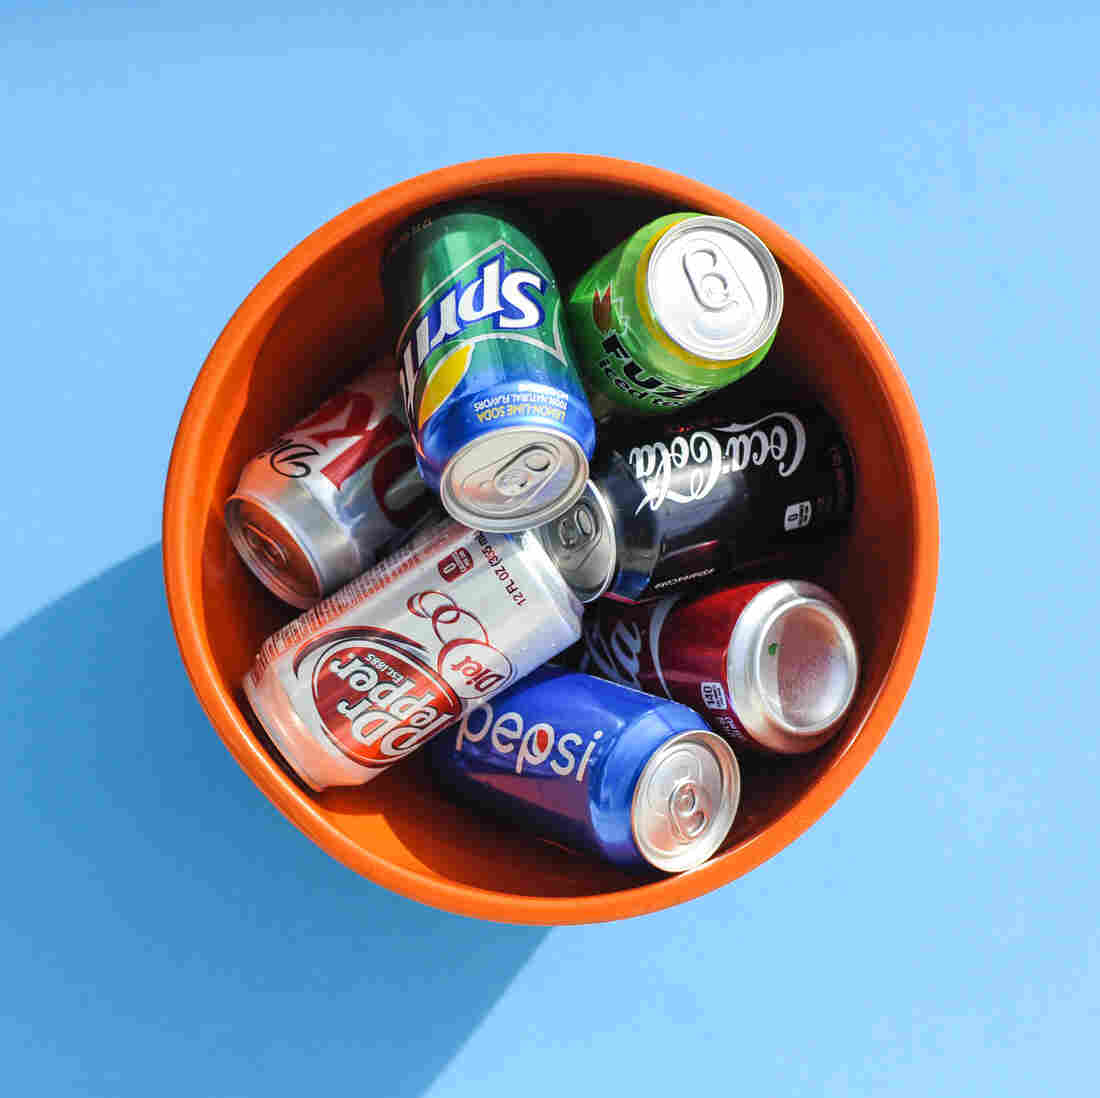 Soda sales have been flattening, but the industry has stepped up marketing and lobbying, according to Marion Nestle in Soda Politics: Taking on Big Soda (And Winning).